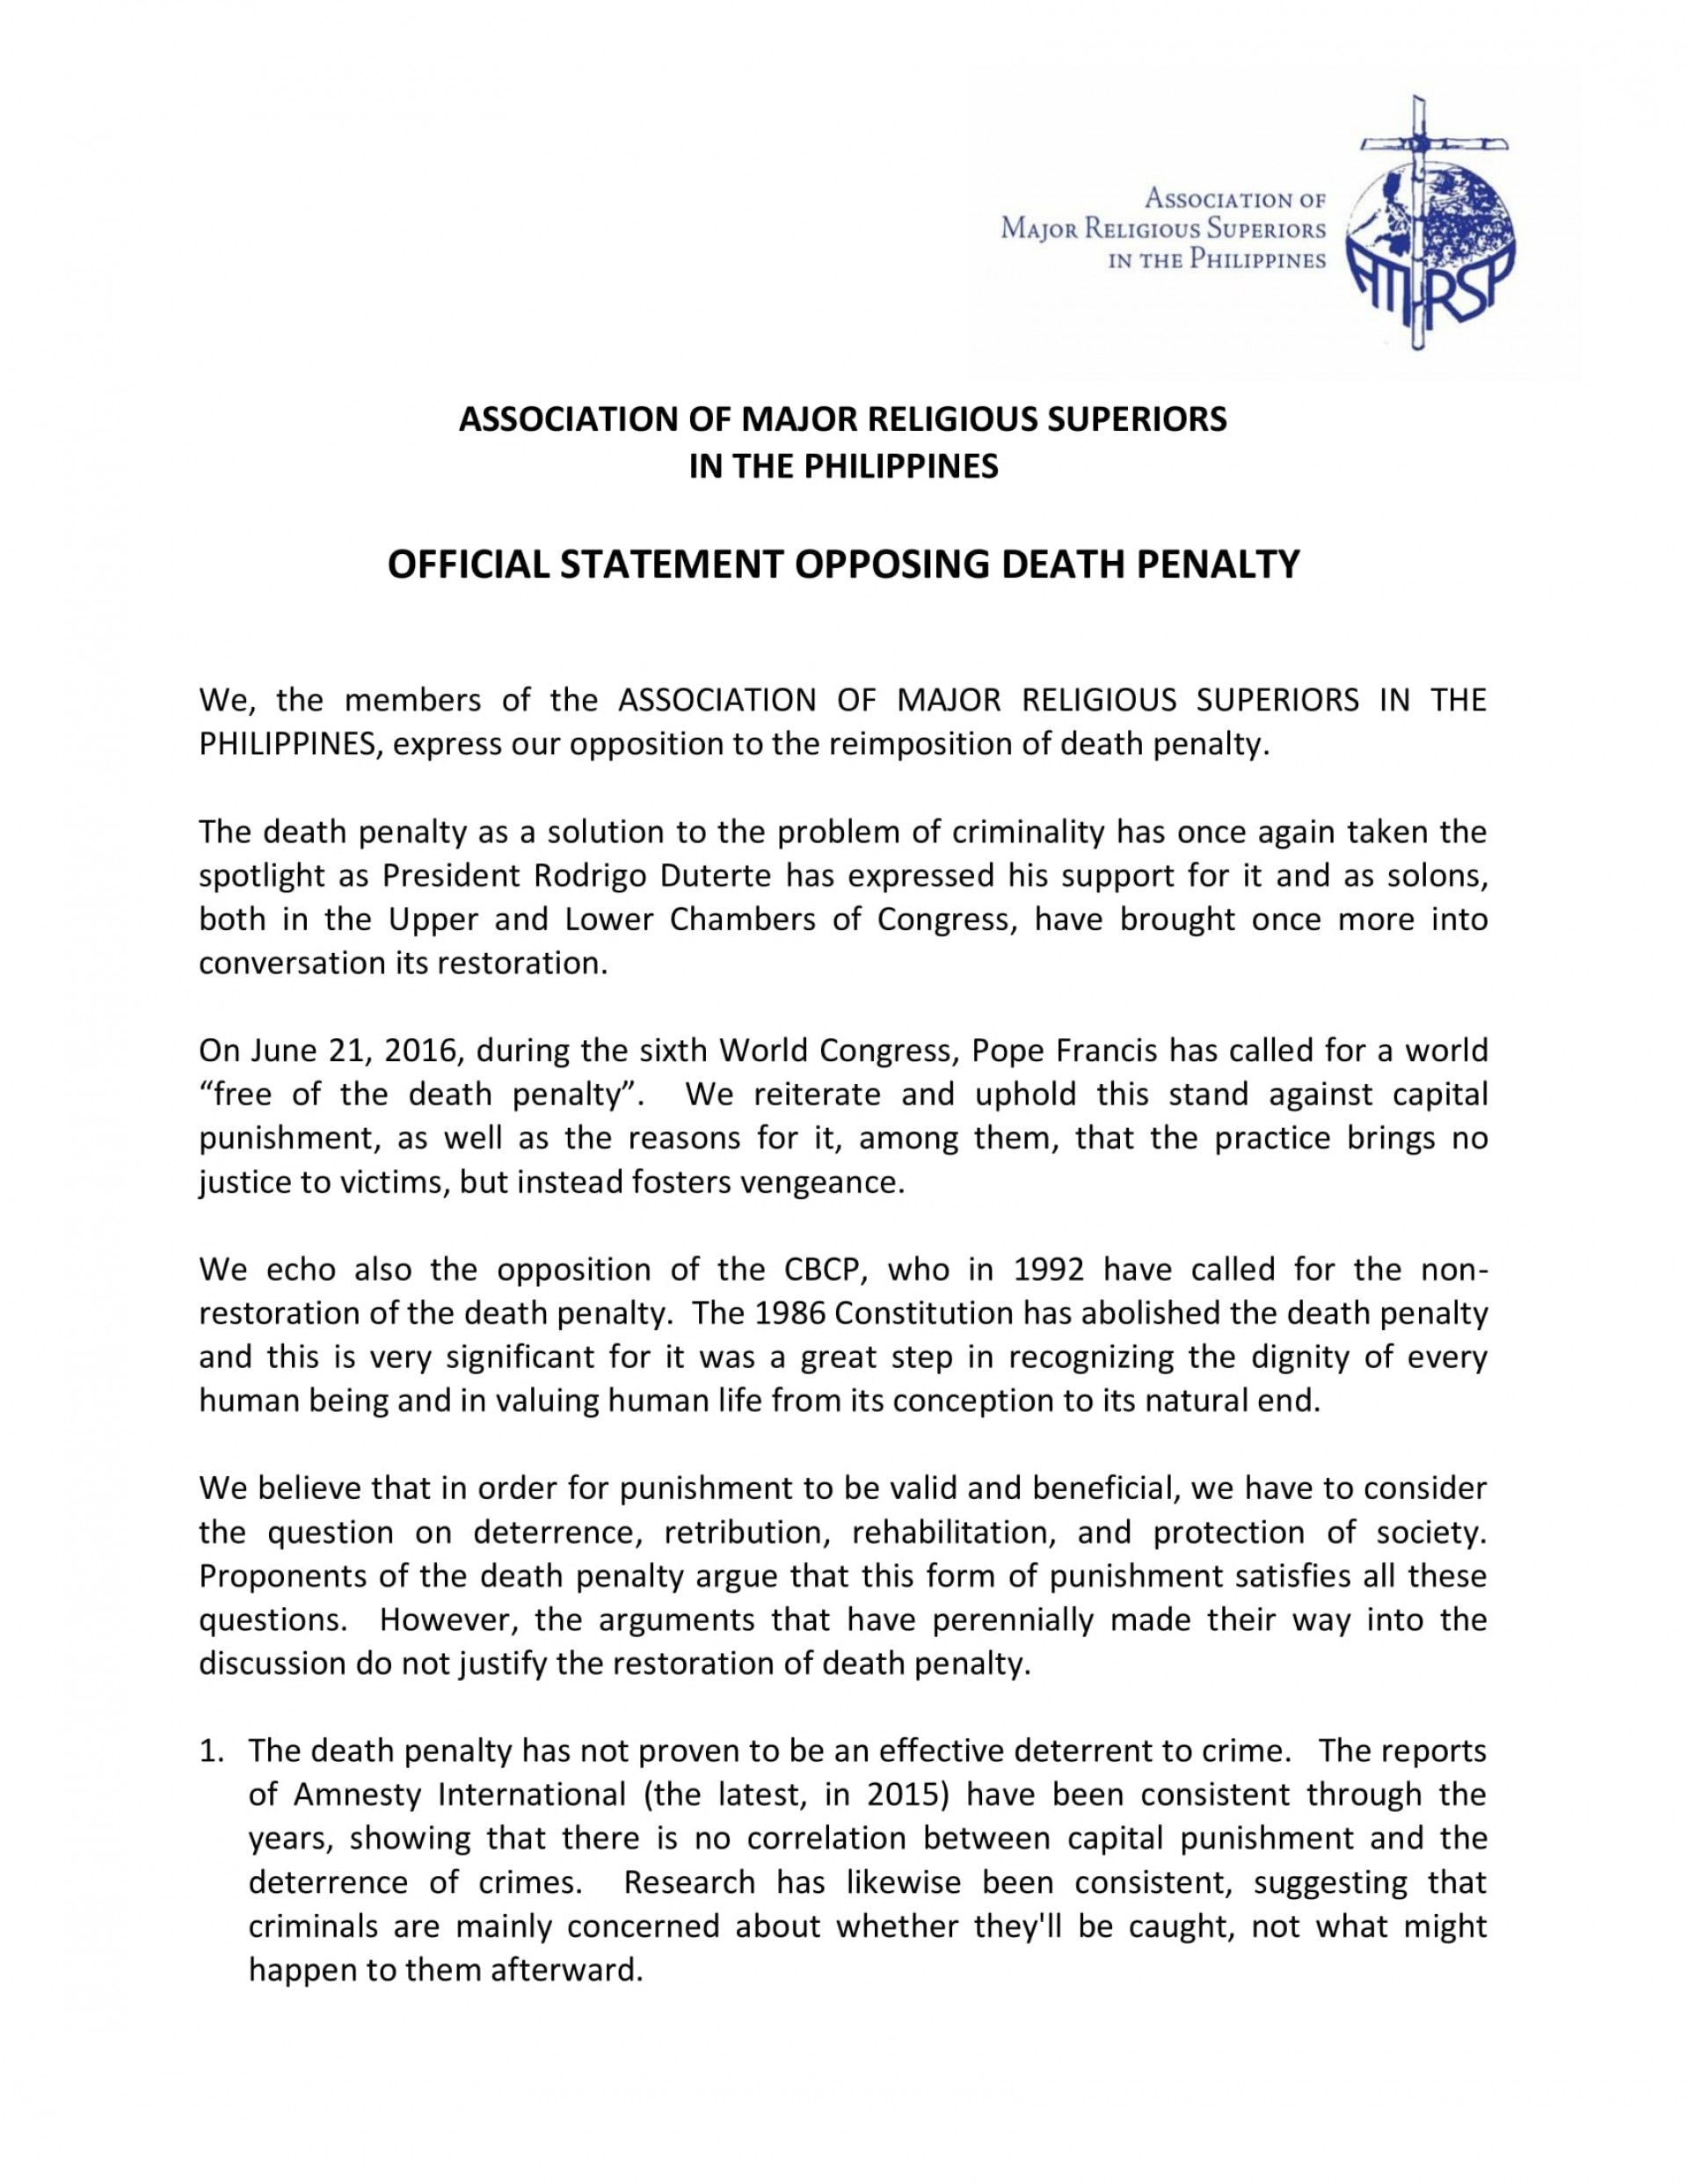 015 Amrsp Message Statement Against Death Penalty Essay On Beautiful Should Be Abolished Or Not In Hindi 1920